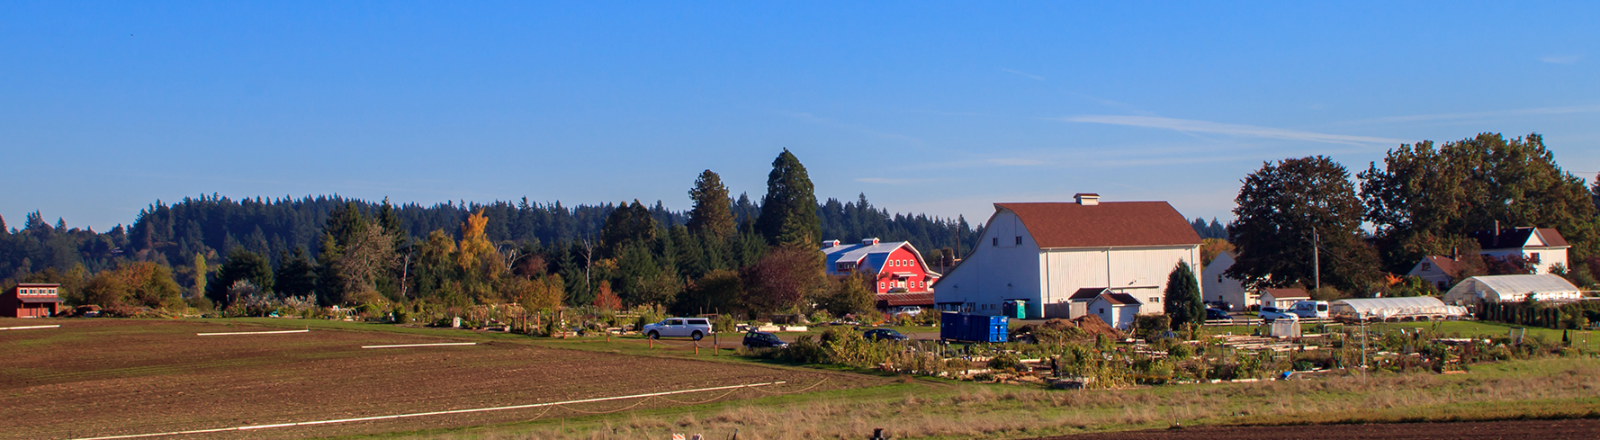 Farmhouse, barn and farm buildings are seen across plowed fields and rows of planted vegetables at Luscher Farm in Lake Oswego